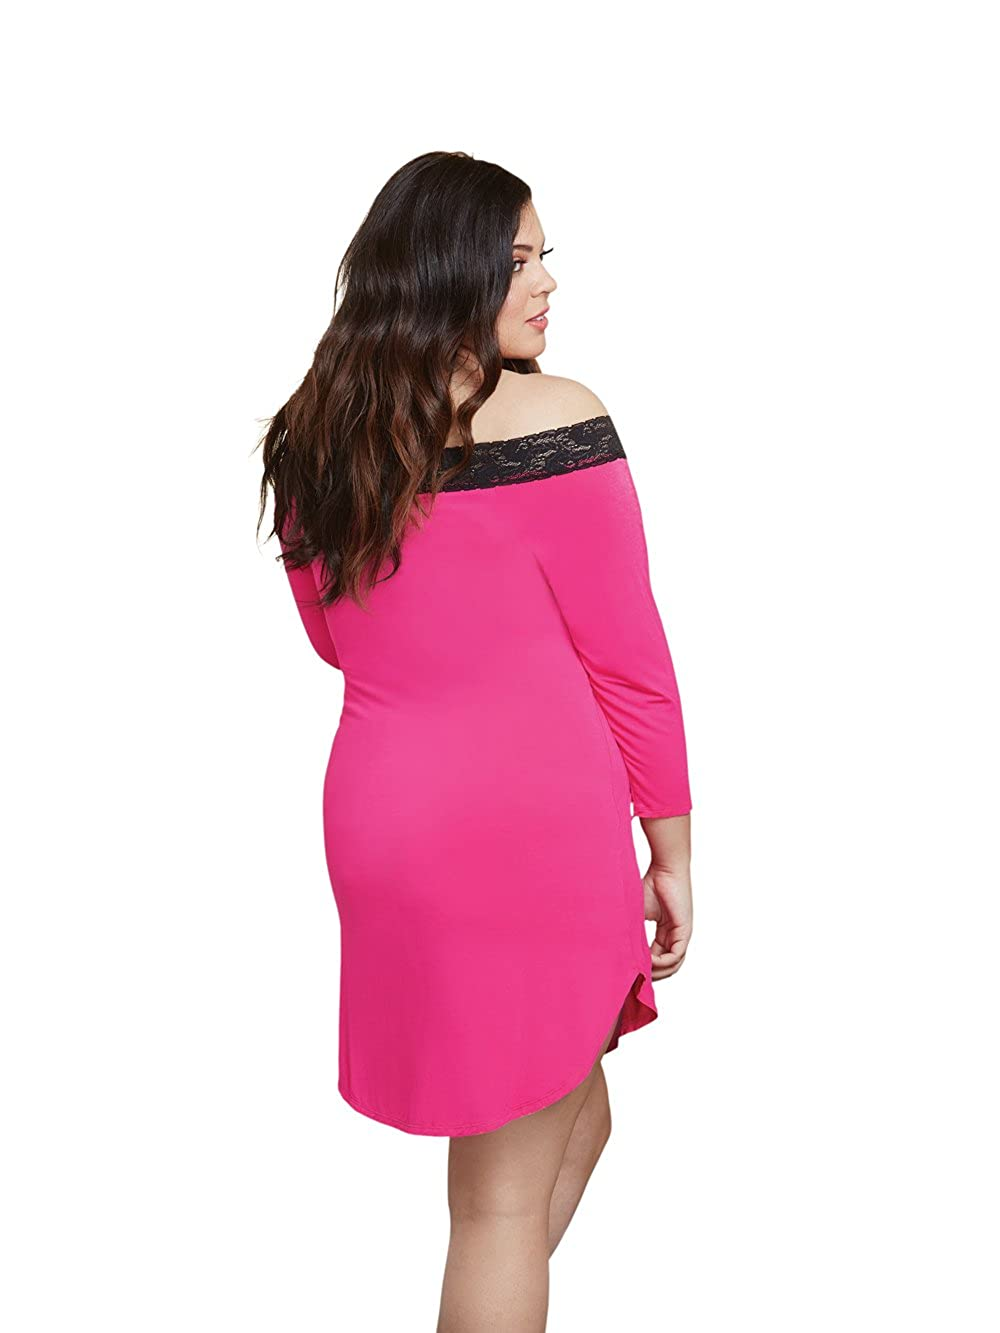 1926beb599d Amazon.com  Dreamgirl Women s Plus Size Jersey and Lace Sparkling Crystal   Sexy  Sleepshirt  Clothing